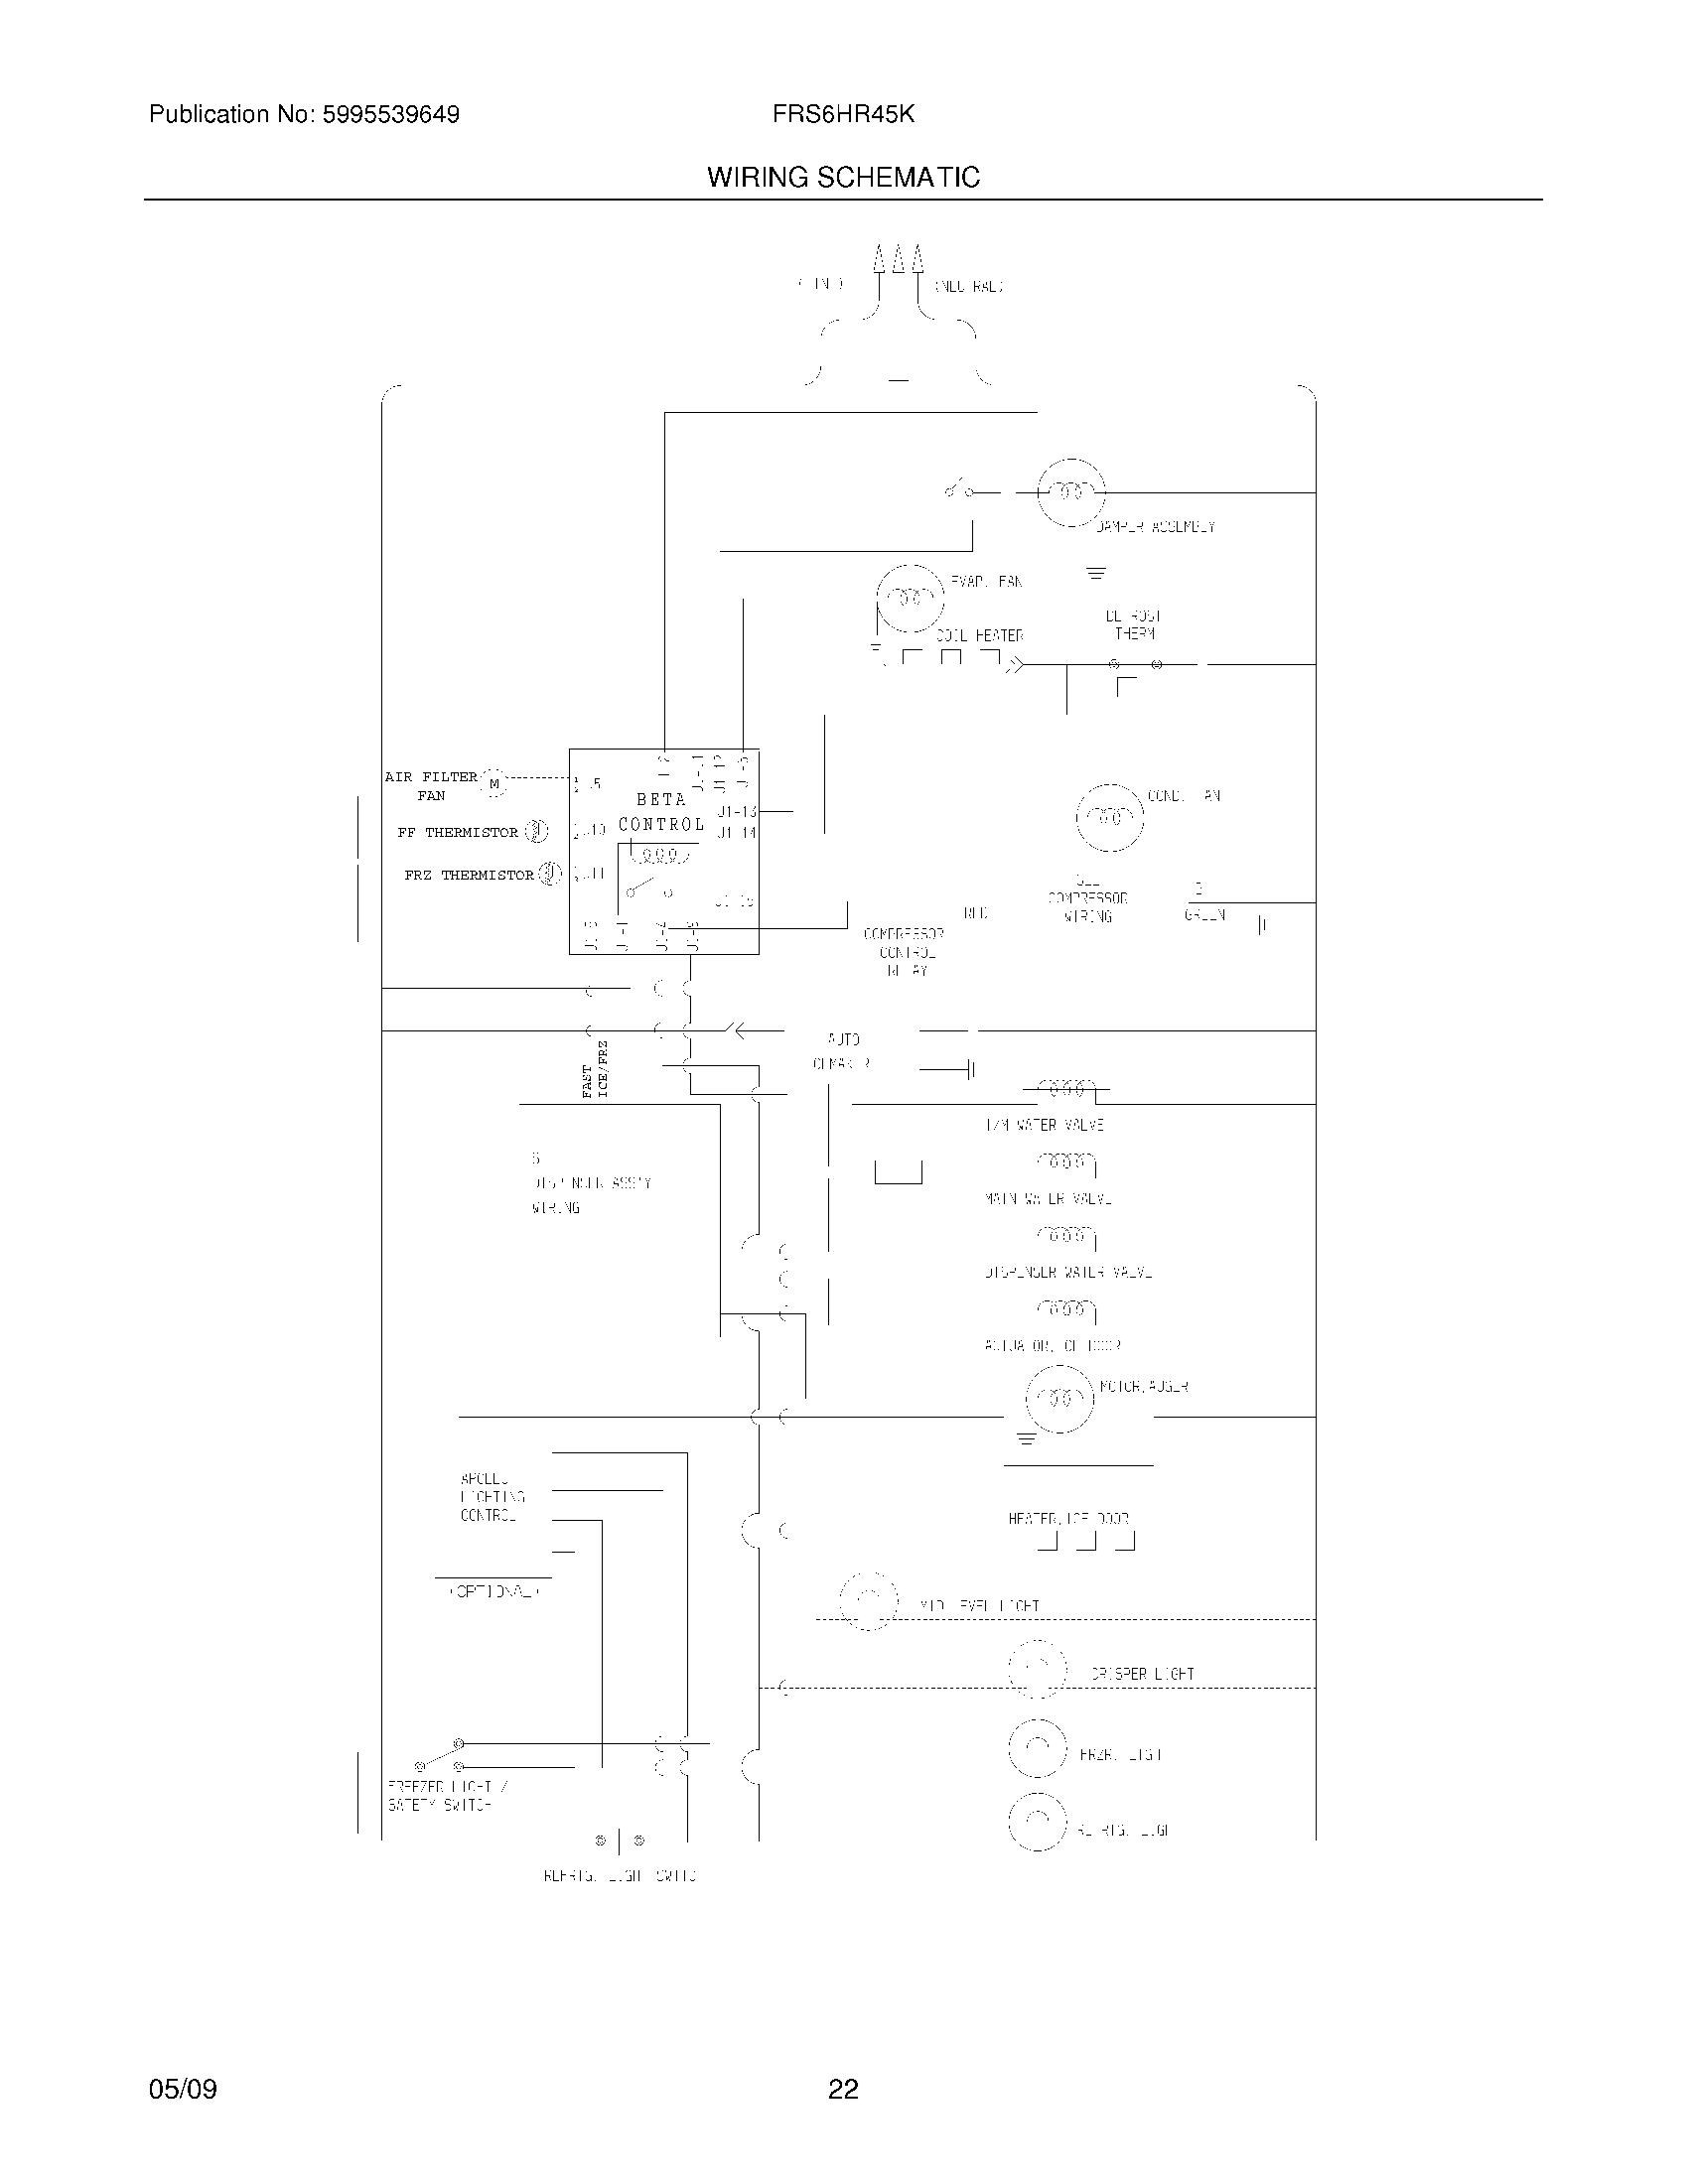 frs6hr45ks0 refrigerator wiring diagram for frigidaire model hr free printable wiring